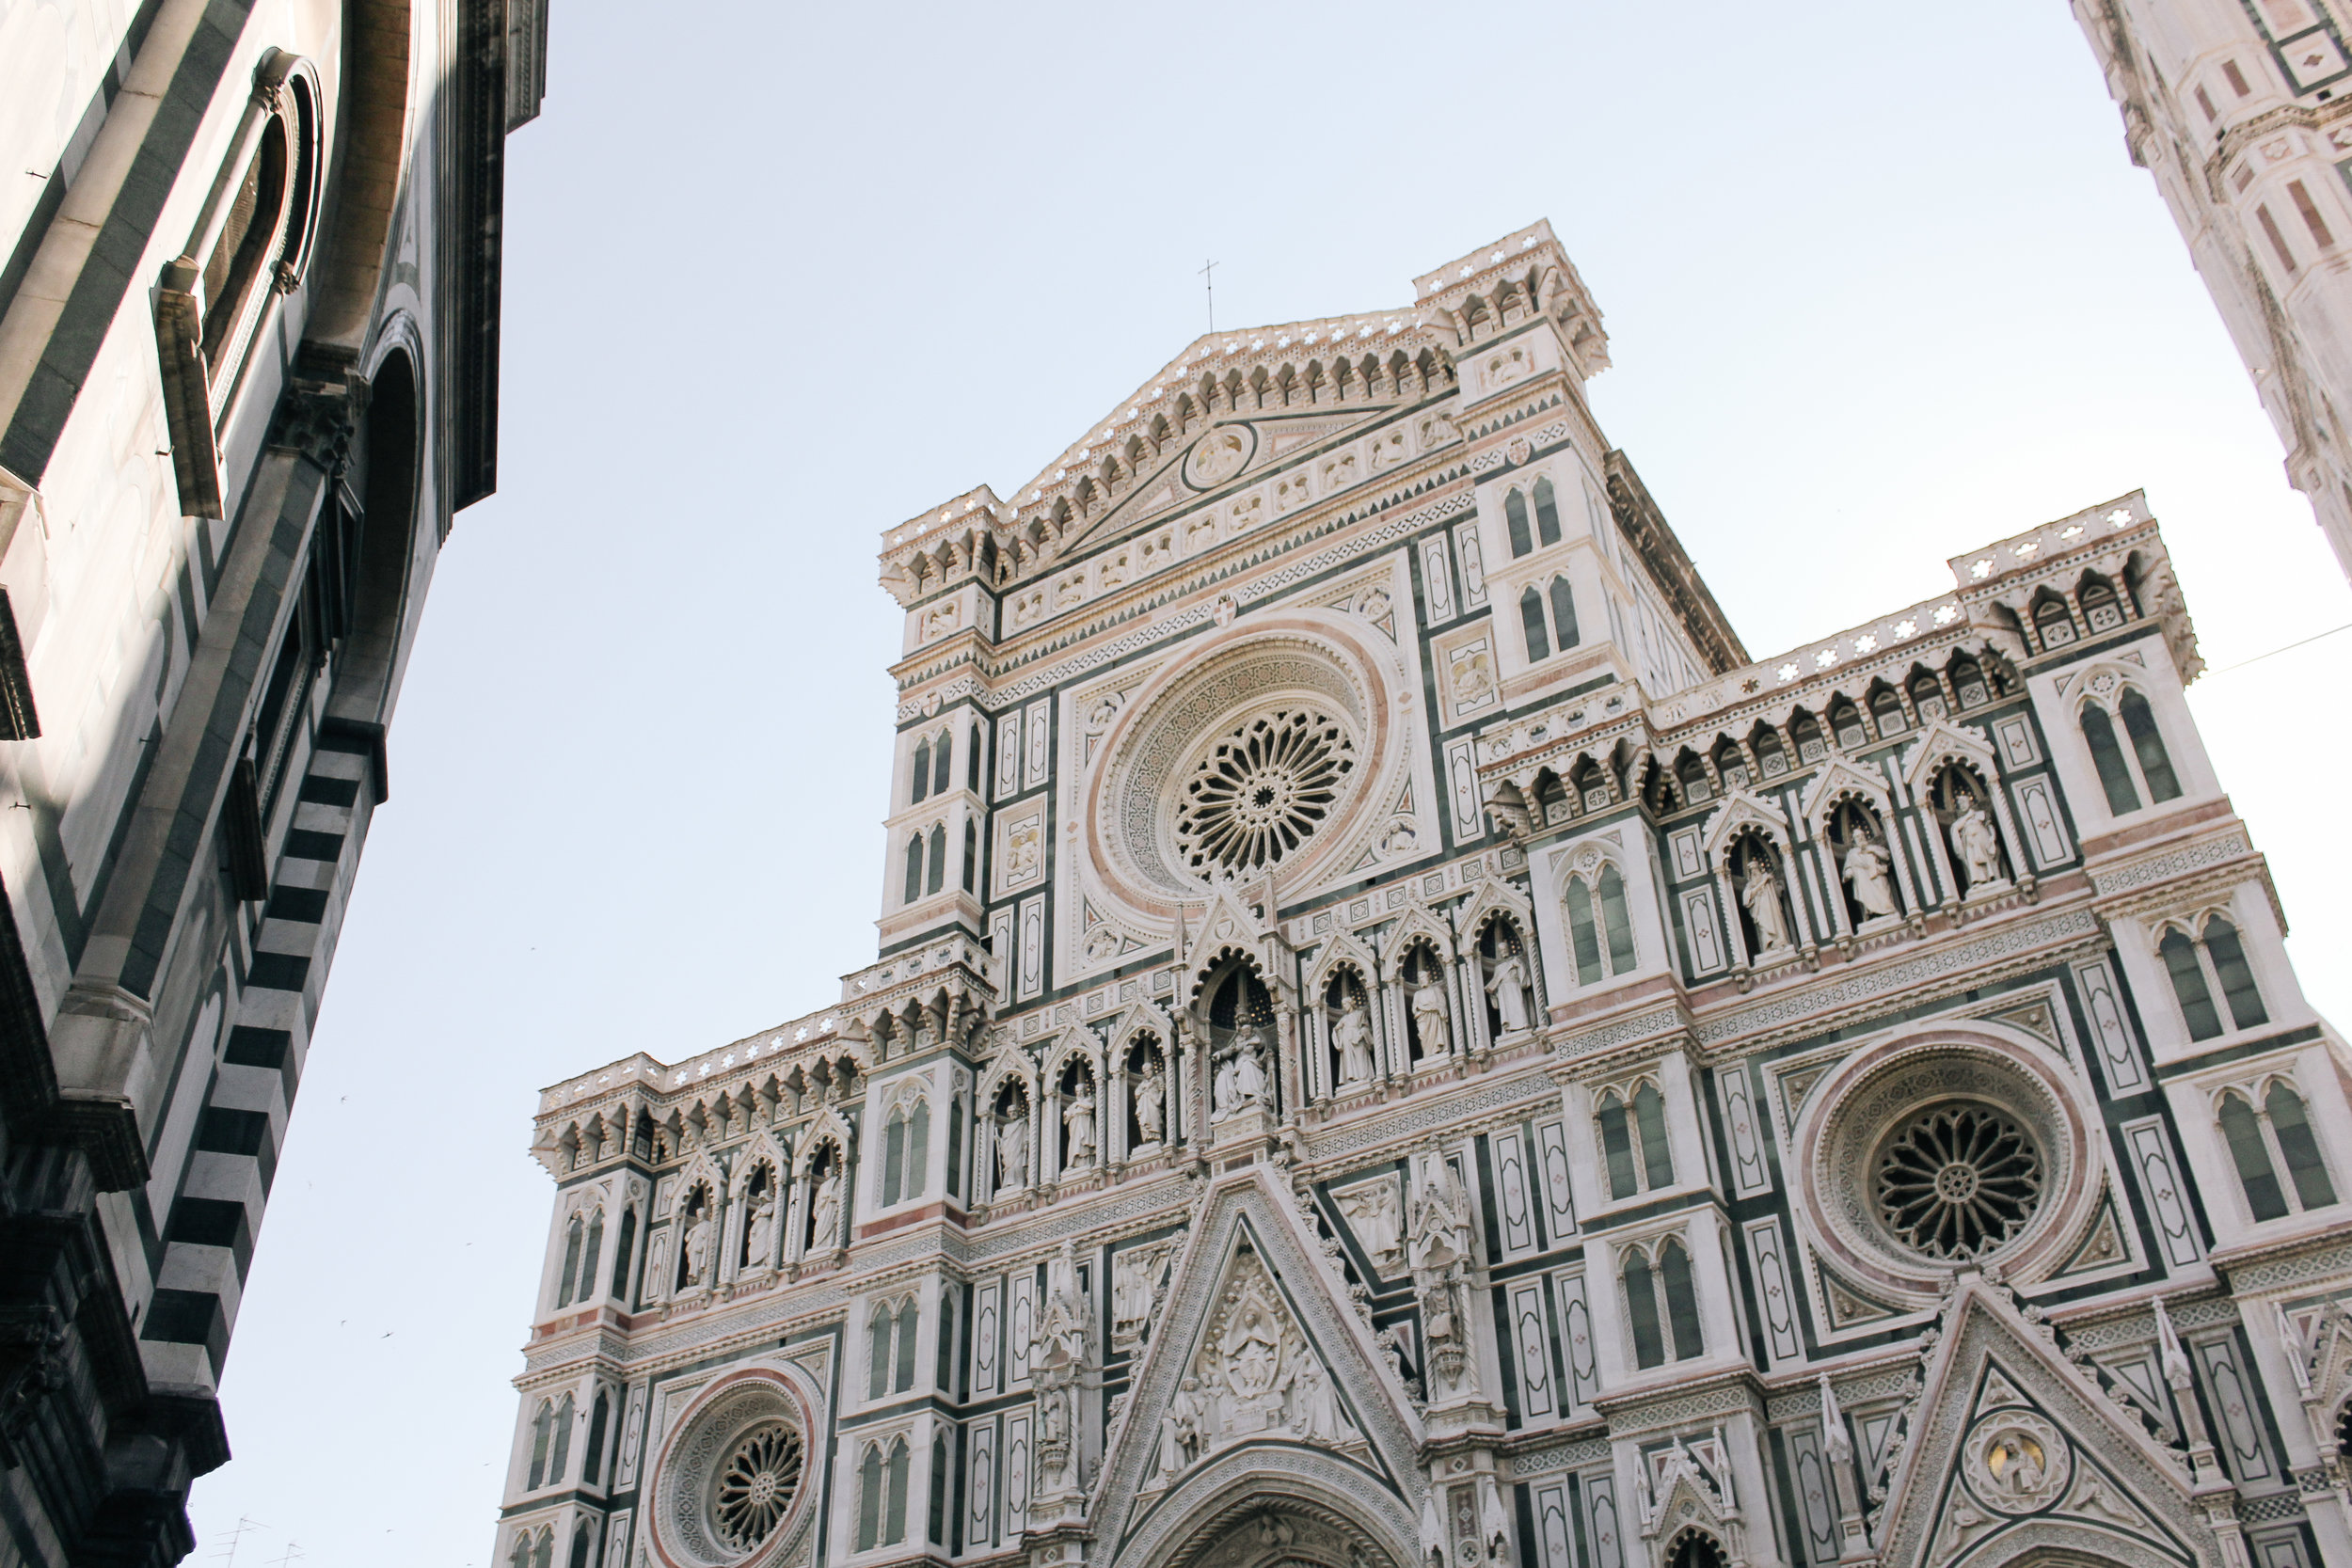 Florence Cathedral, formally the Cattedrale di Santa Maria del Fiore